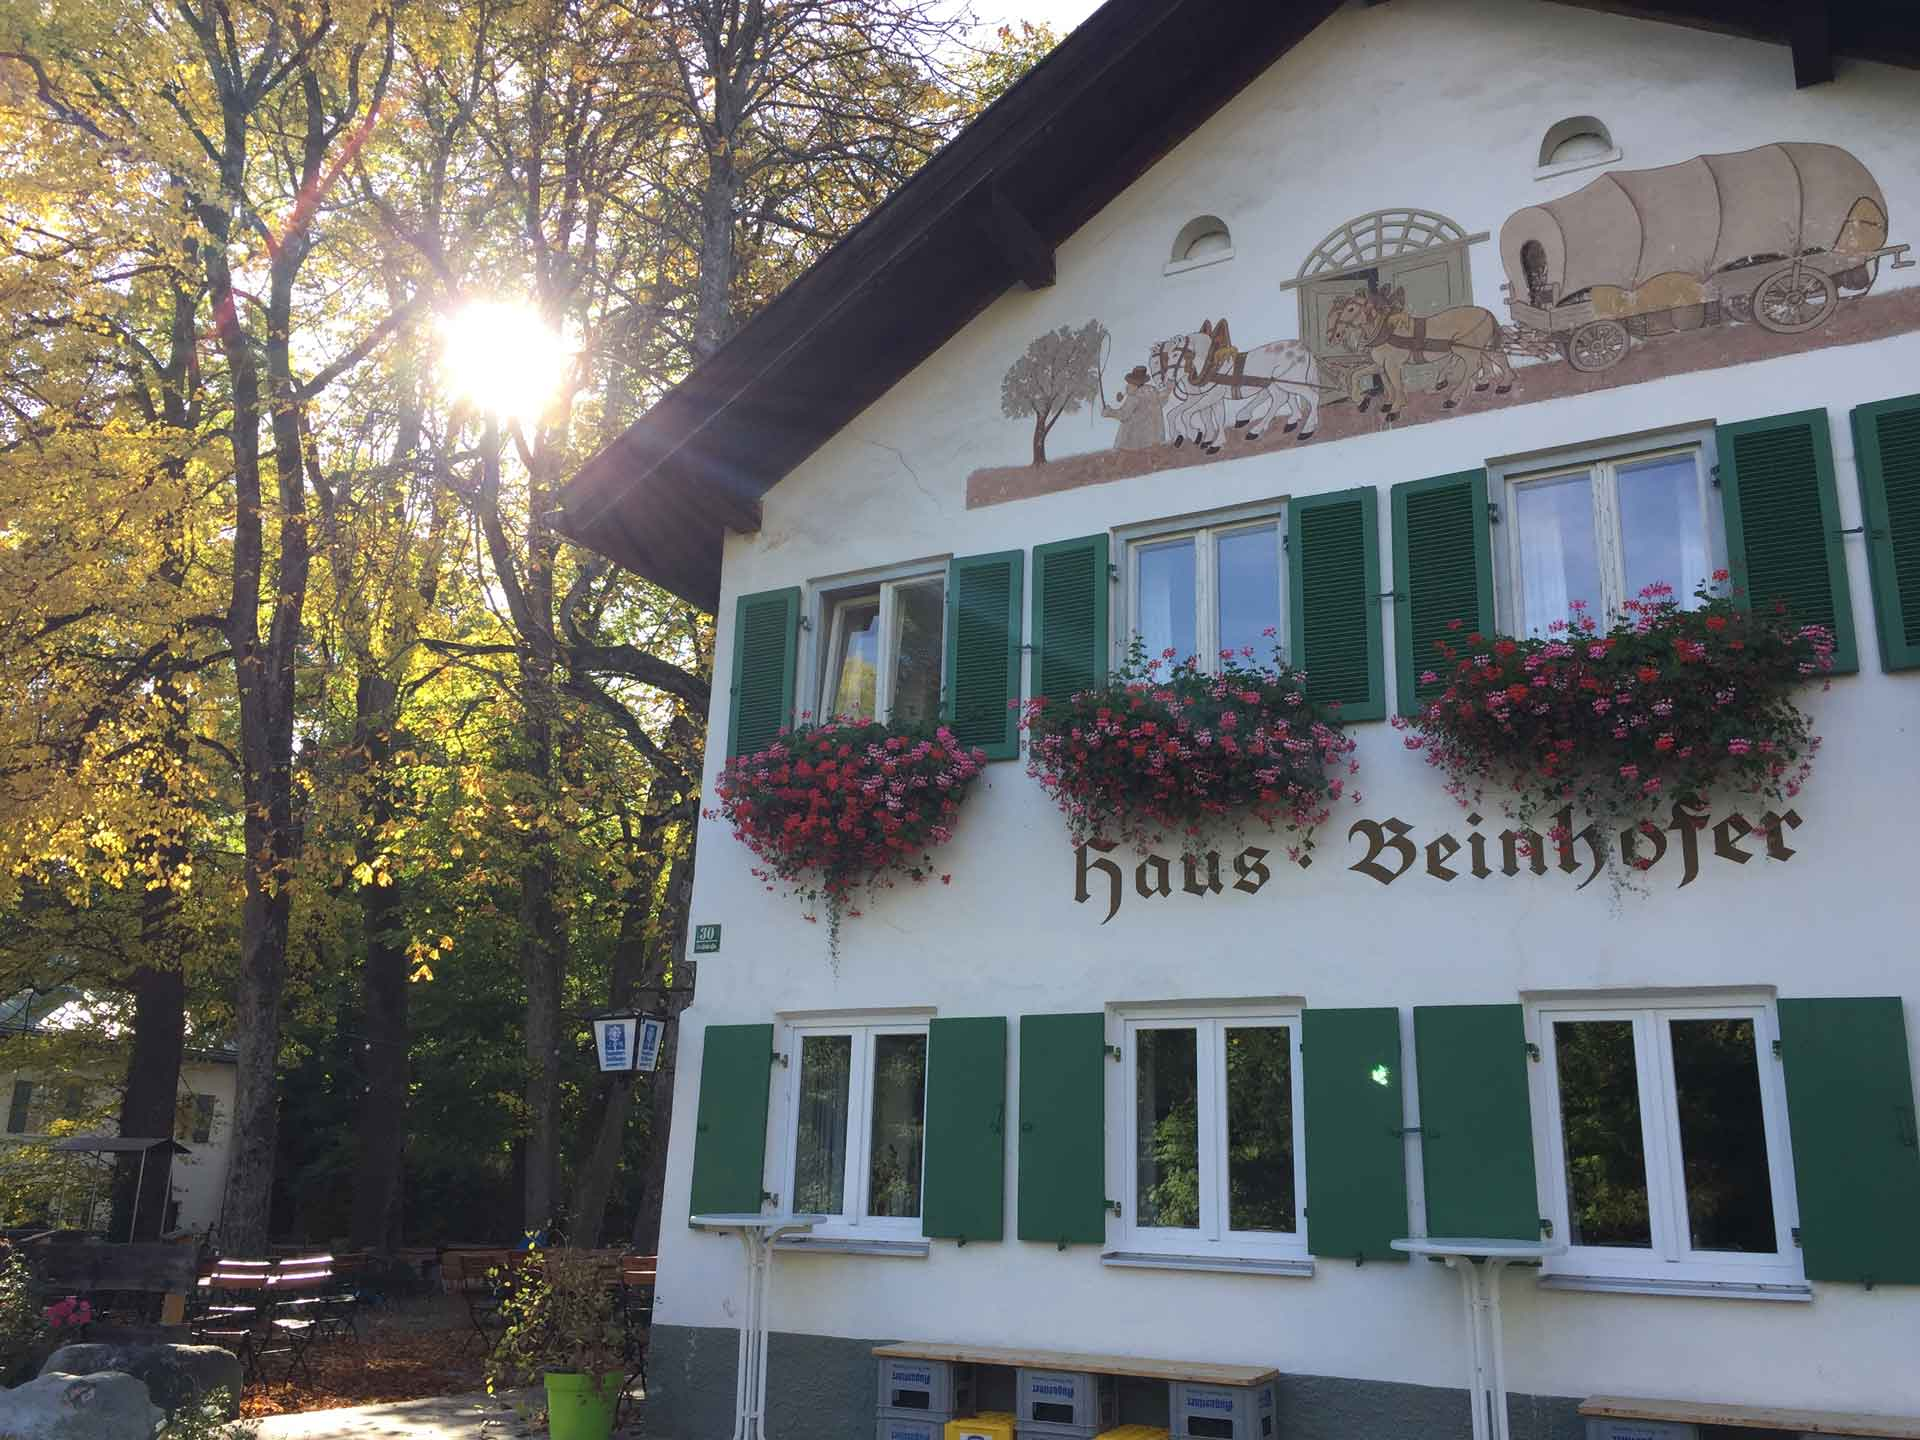 Zum Beinhofer Murnau - Wirtshaus Biergarten Pension in Murnau am Staffelsee